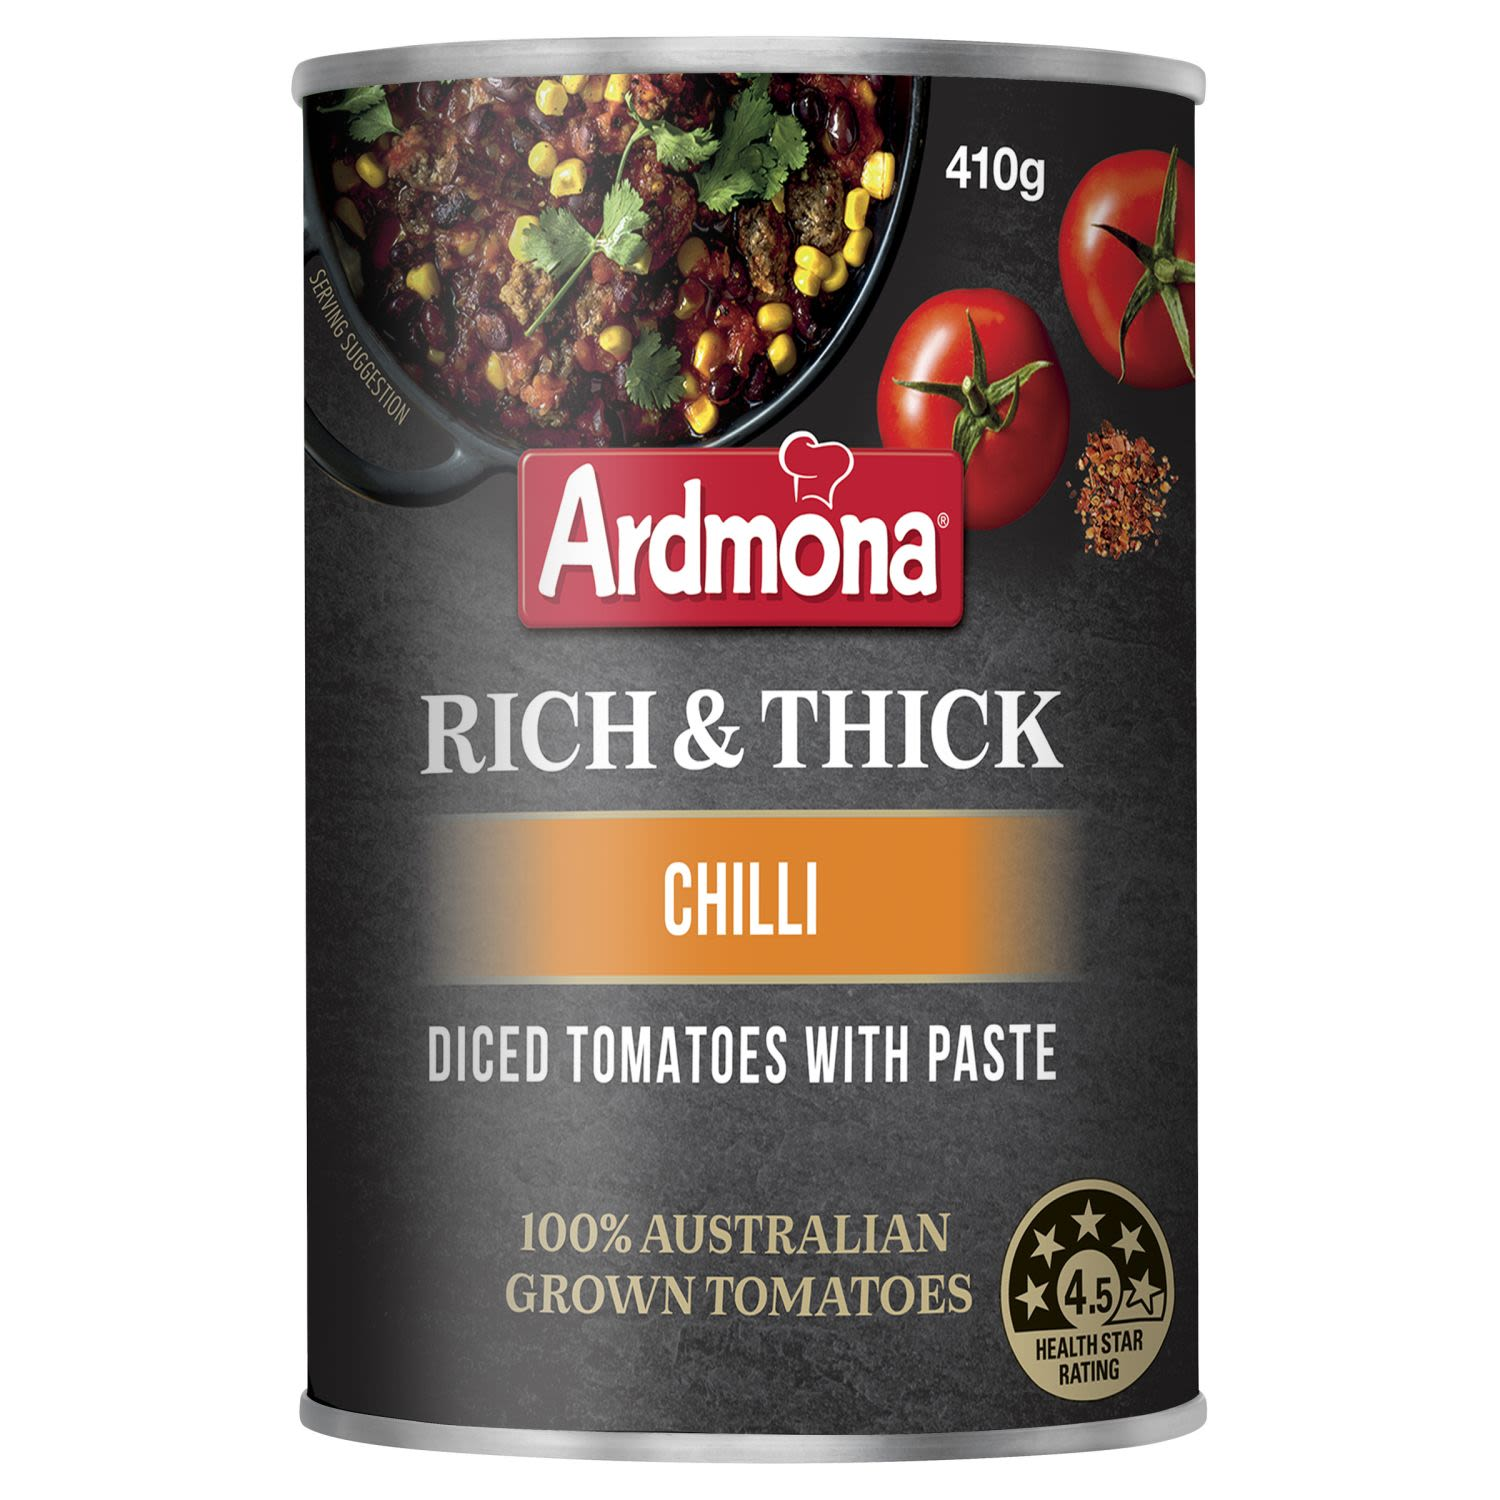 Ardmona Rich & Thick Diced Tomatoes with Paste Chilli, 410 Gram